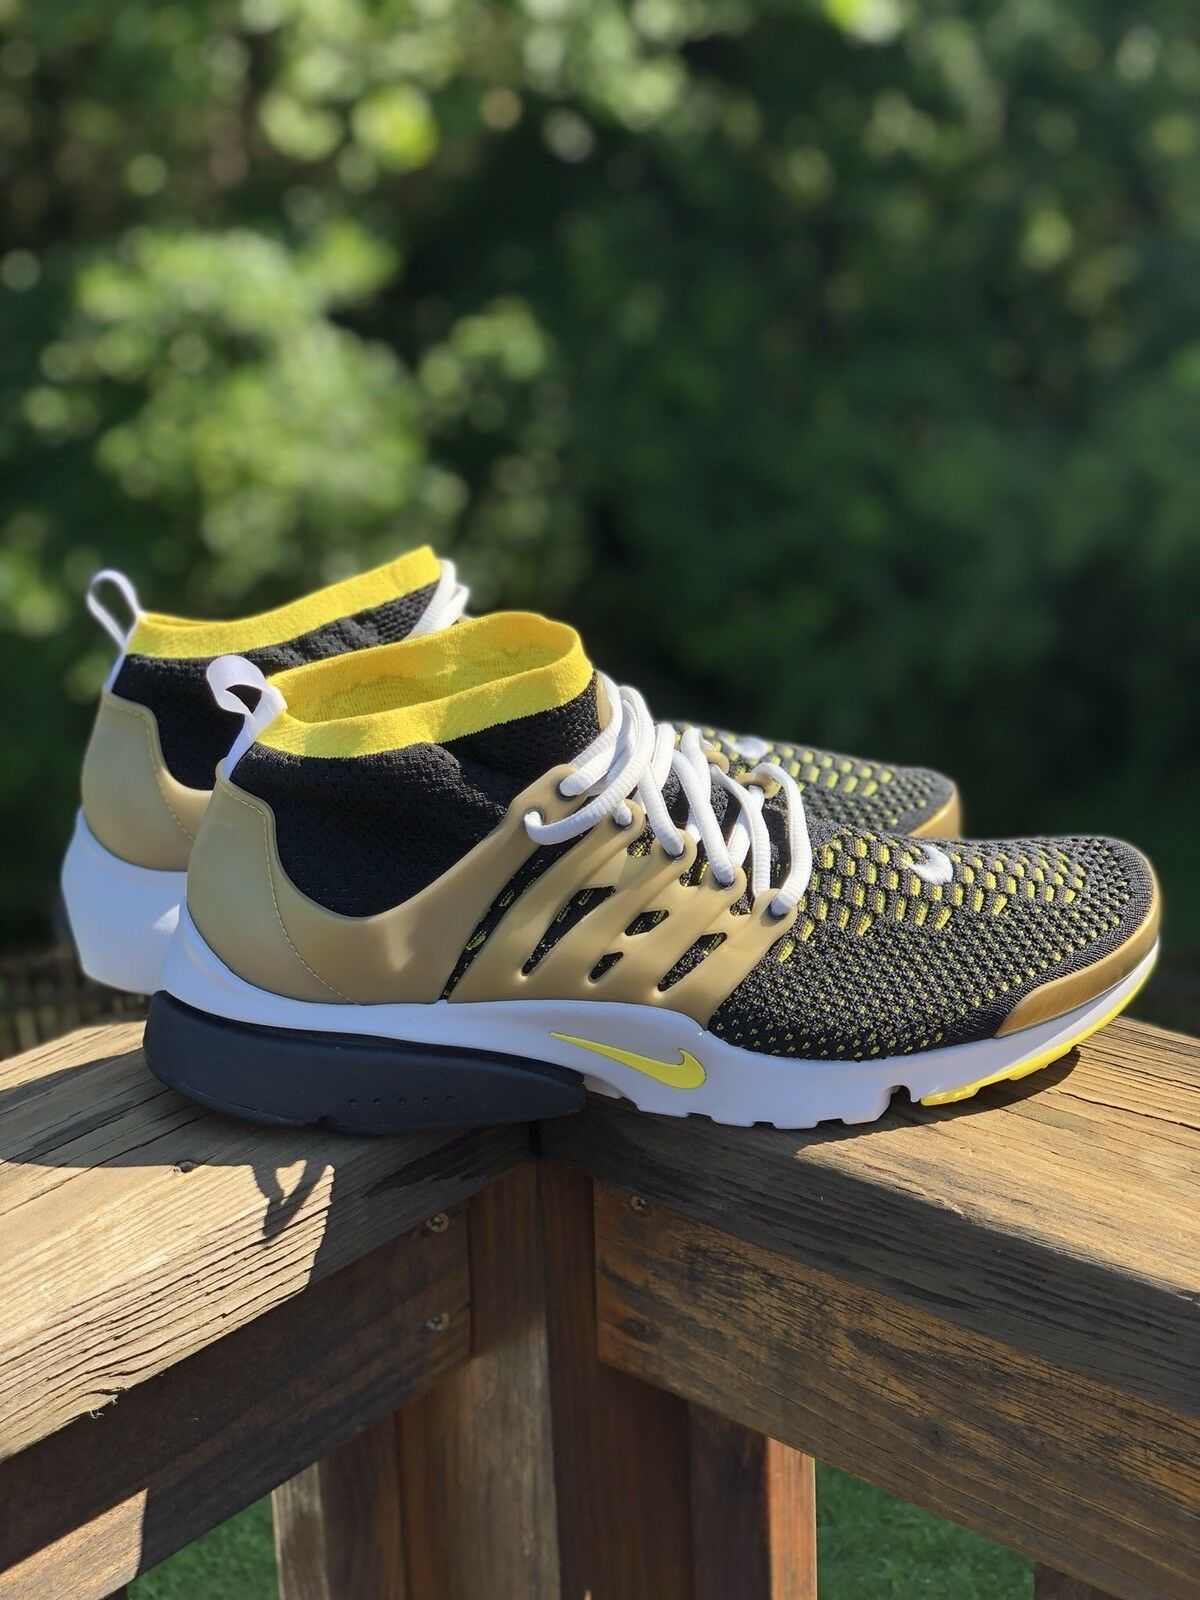 Nike Air Presto Flyknit Ultra Black Yellow Gold Men's 835570-007 Size 13 LIMITED